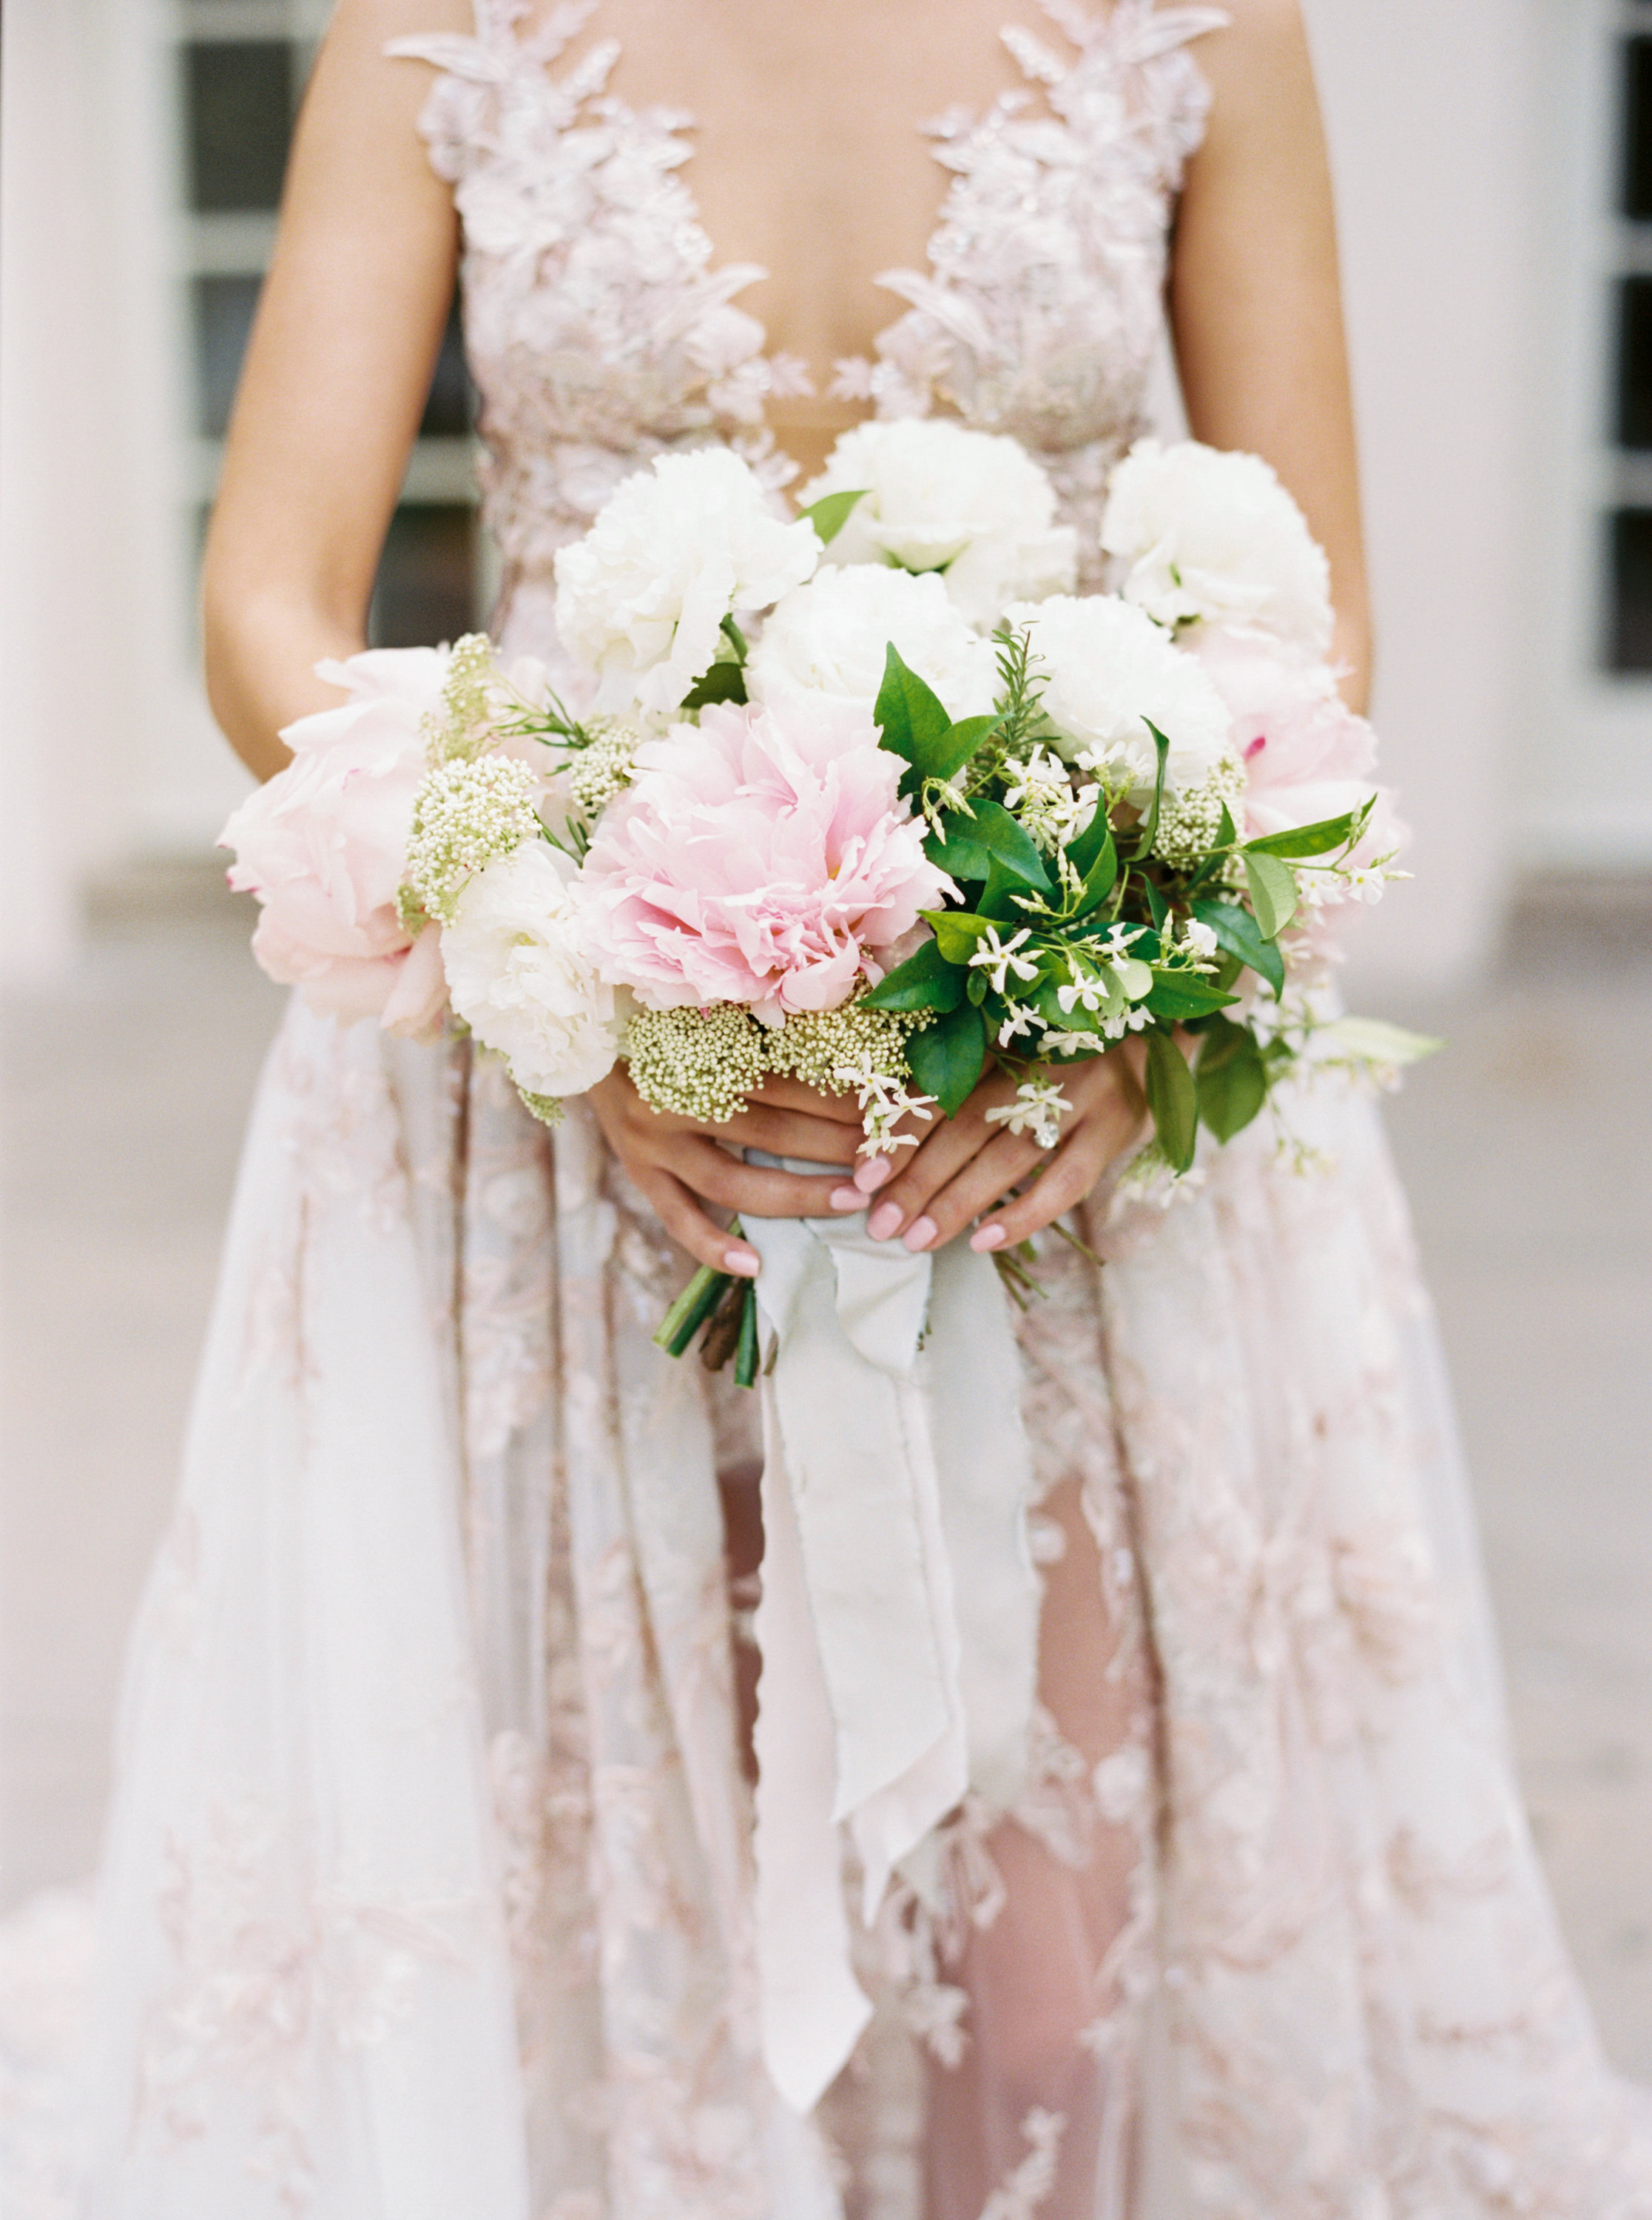 bridal bouquet of peonies jasmine and rice flowers with ribbon